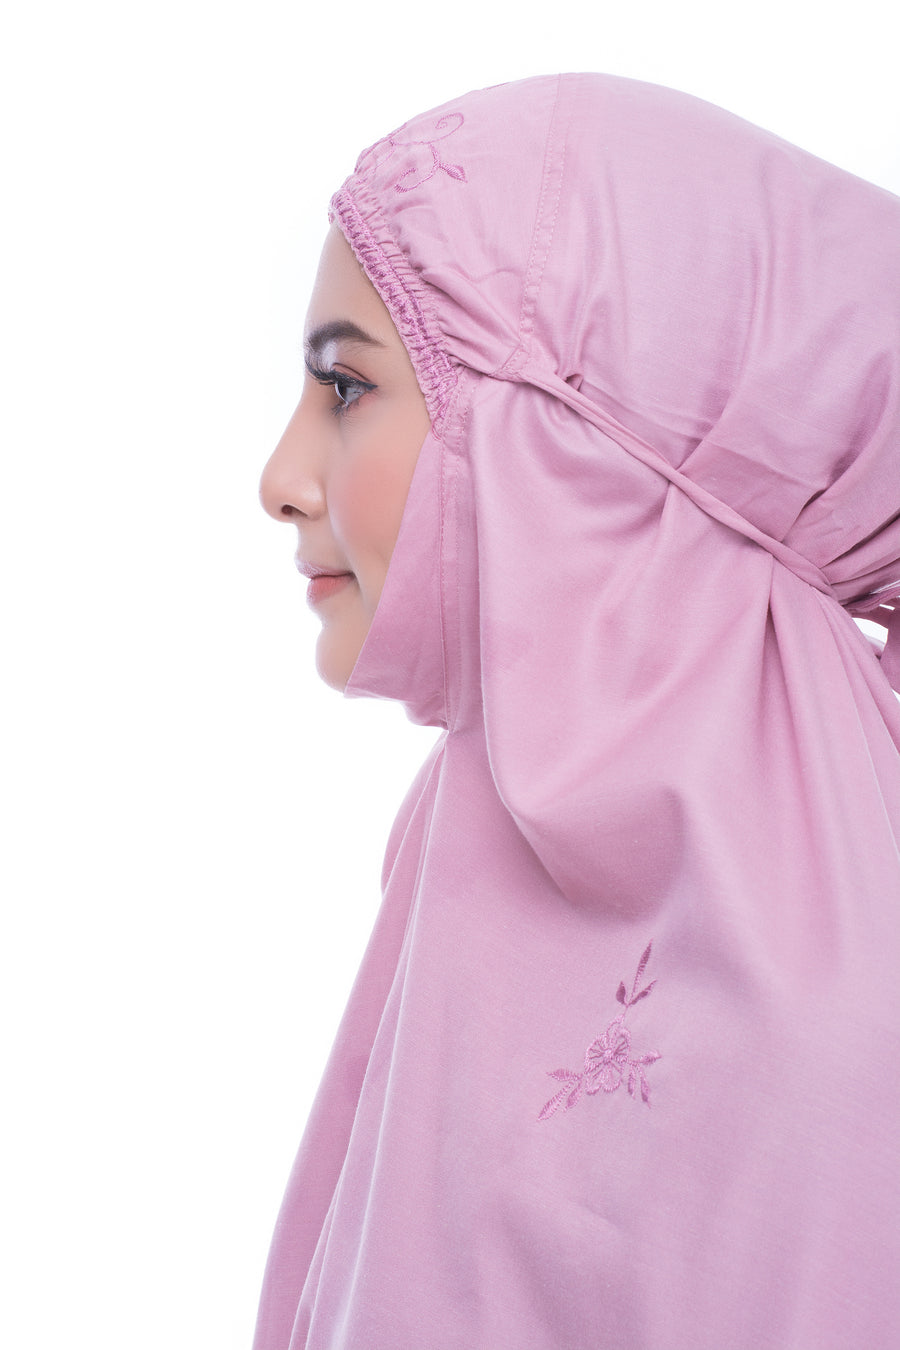 Telekung Travel - Telekung Aasma - Dusty Pink